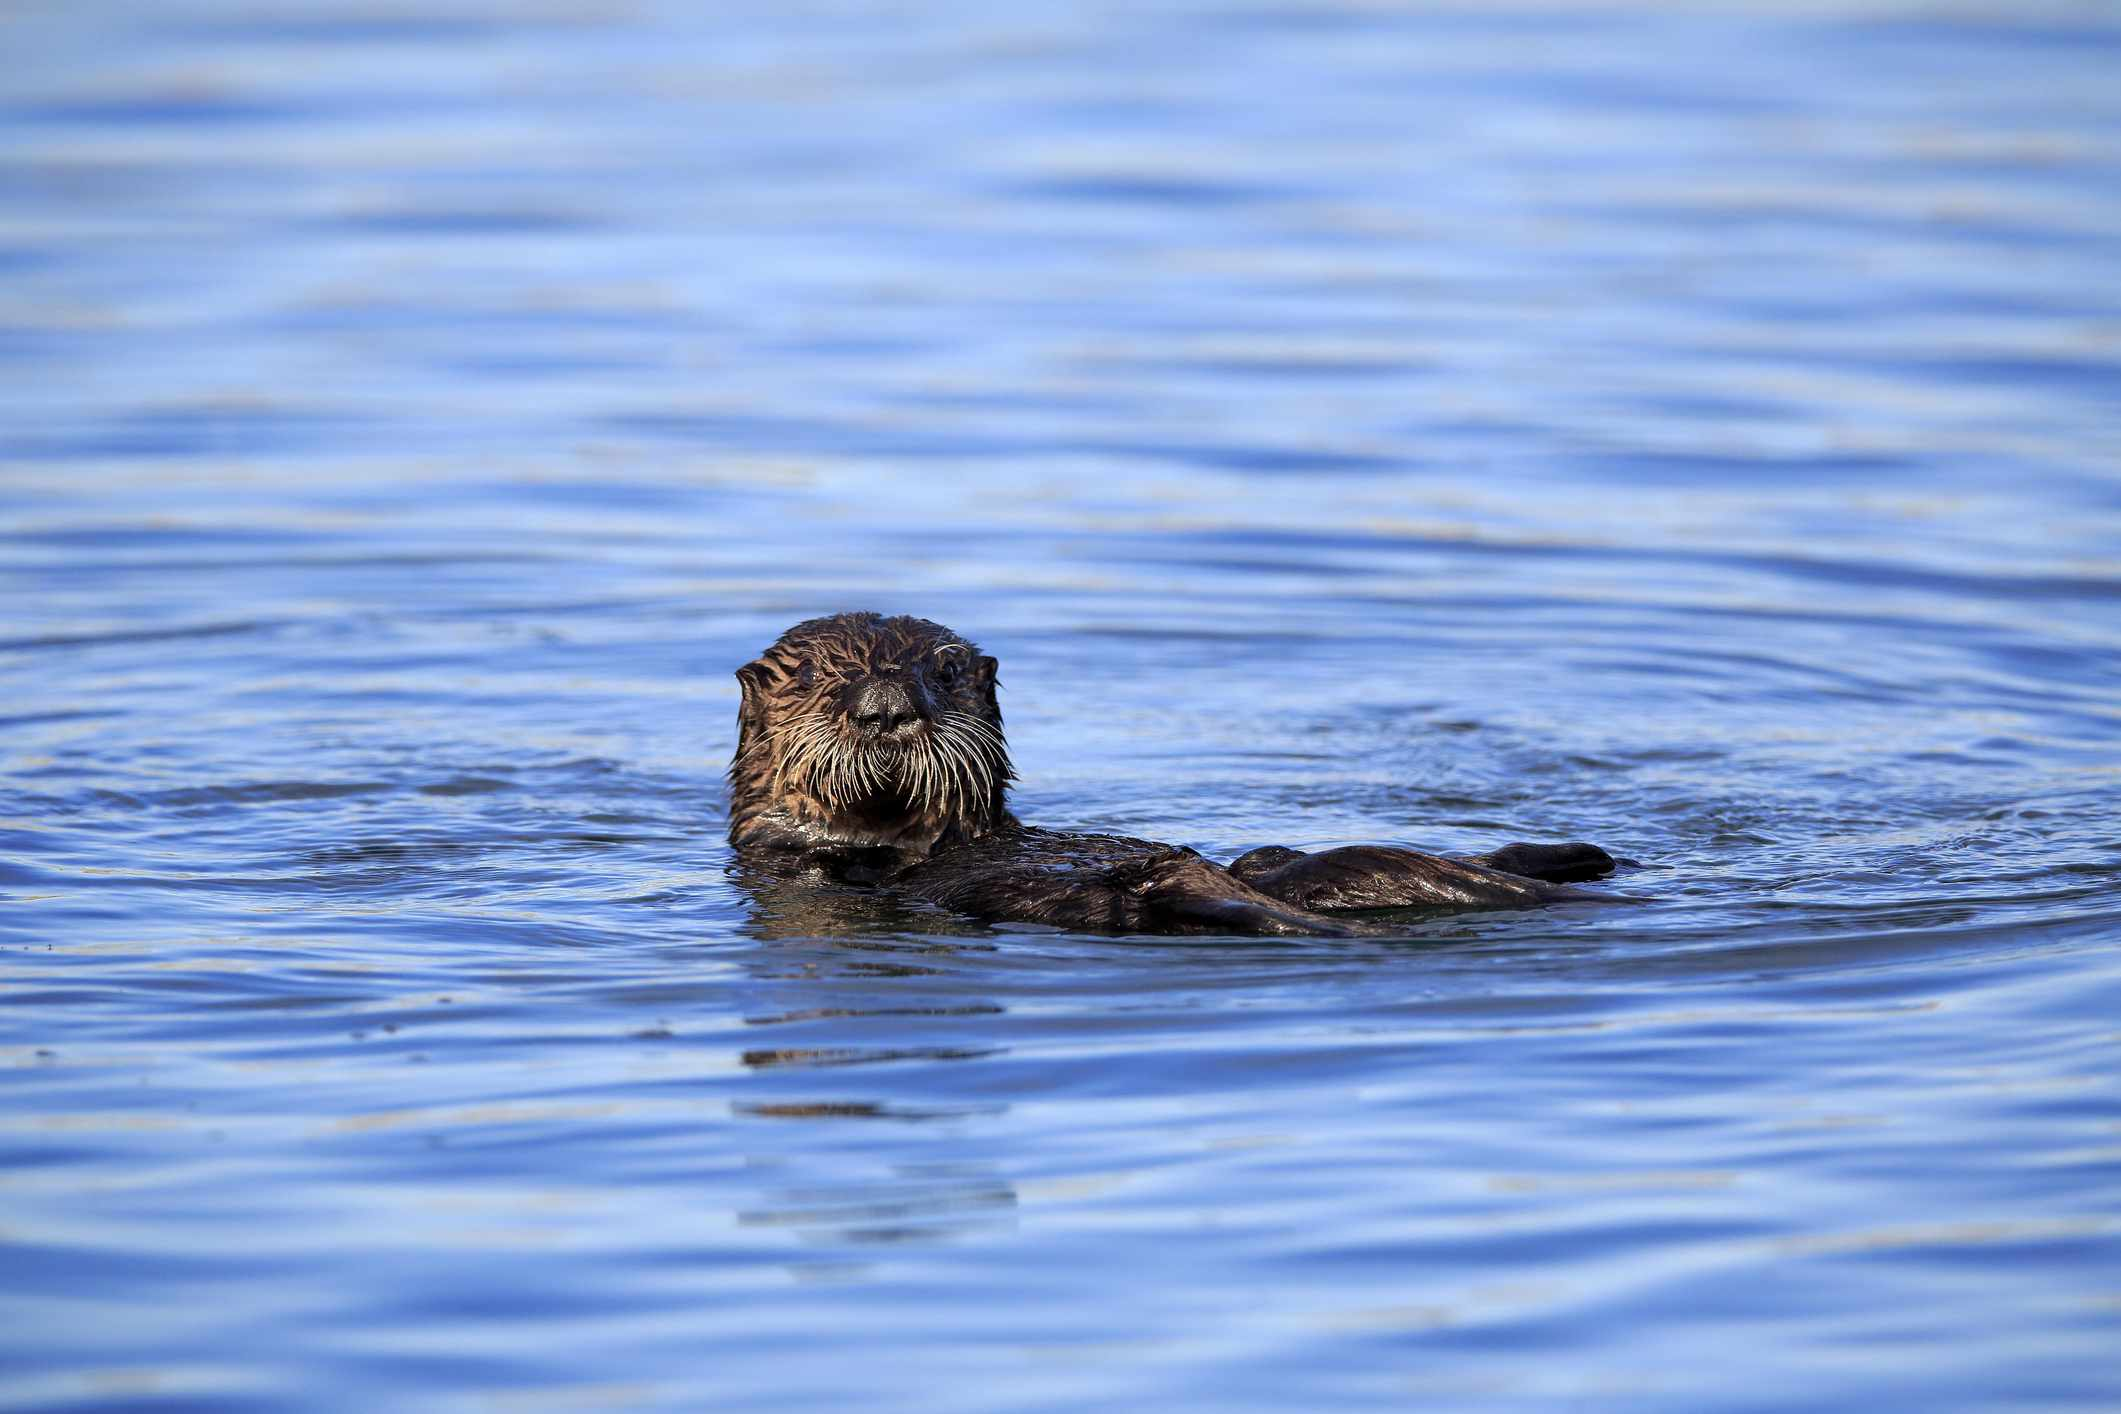 river otter swimming in blue water